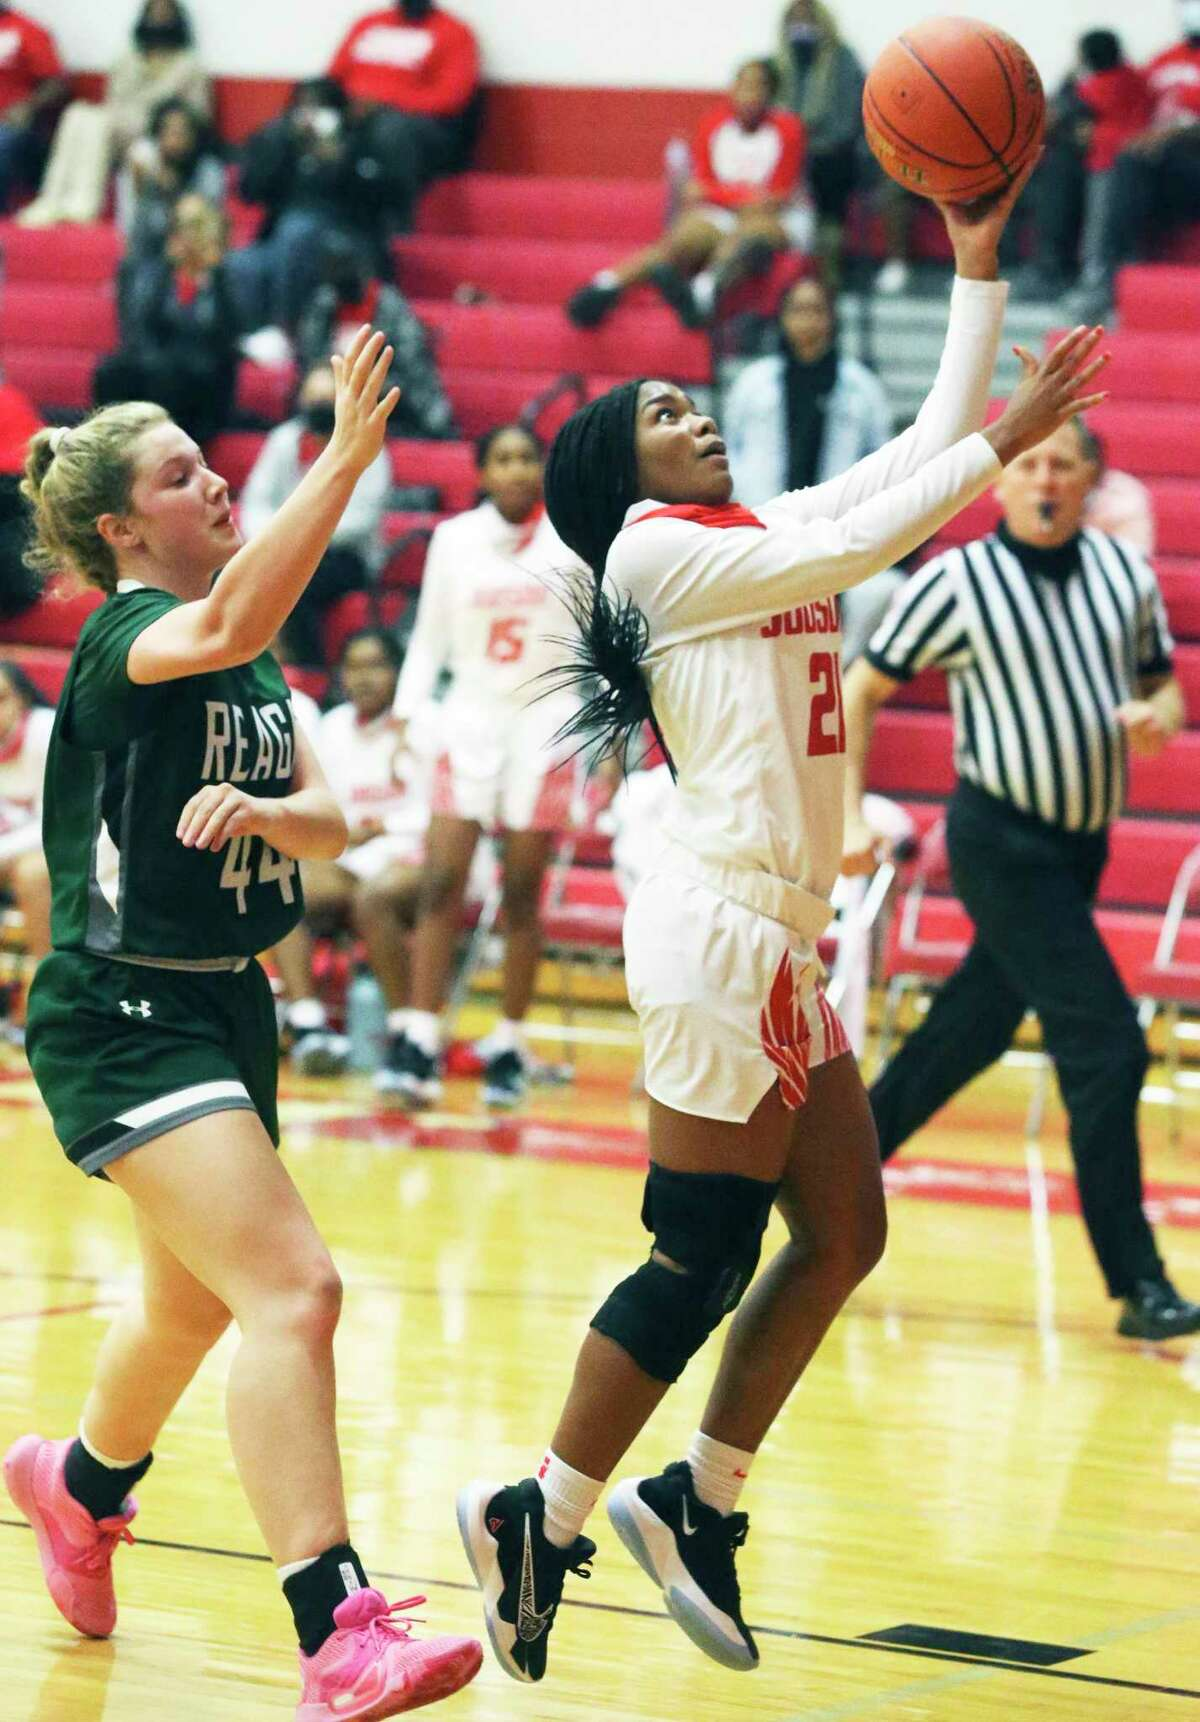 Rocket guard Kierstein Sanderlin gets in front of Miranda Noack for a layup as Judson hosts Reagan in girls basketball at Judson gym Dec. 1, 2020.